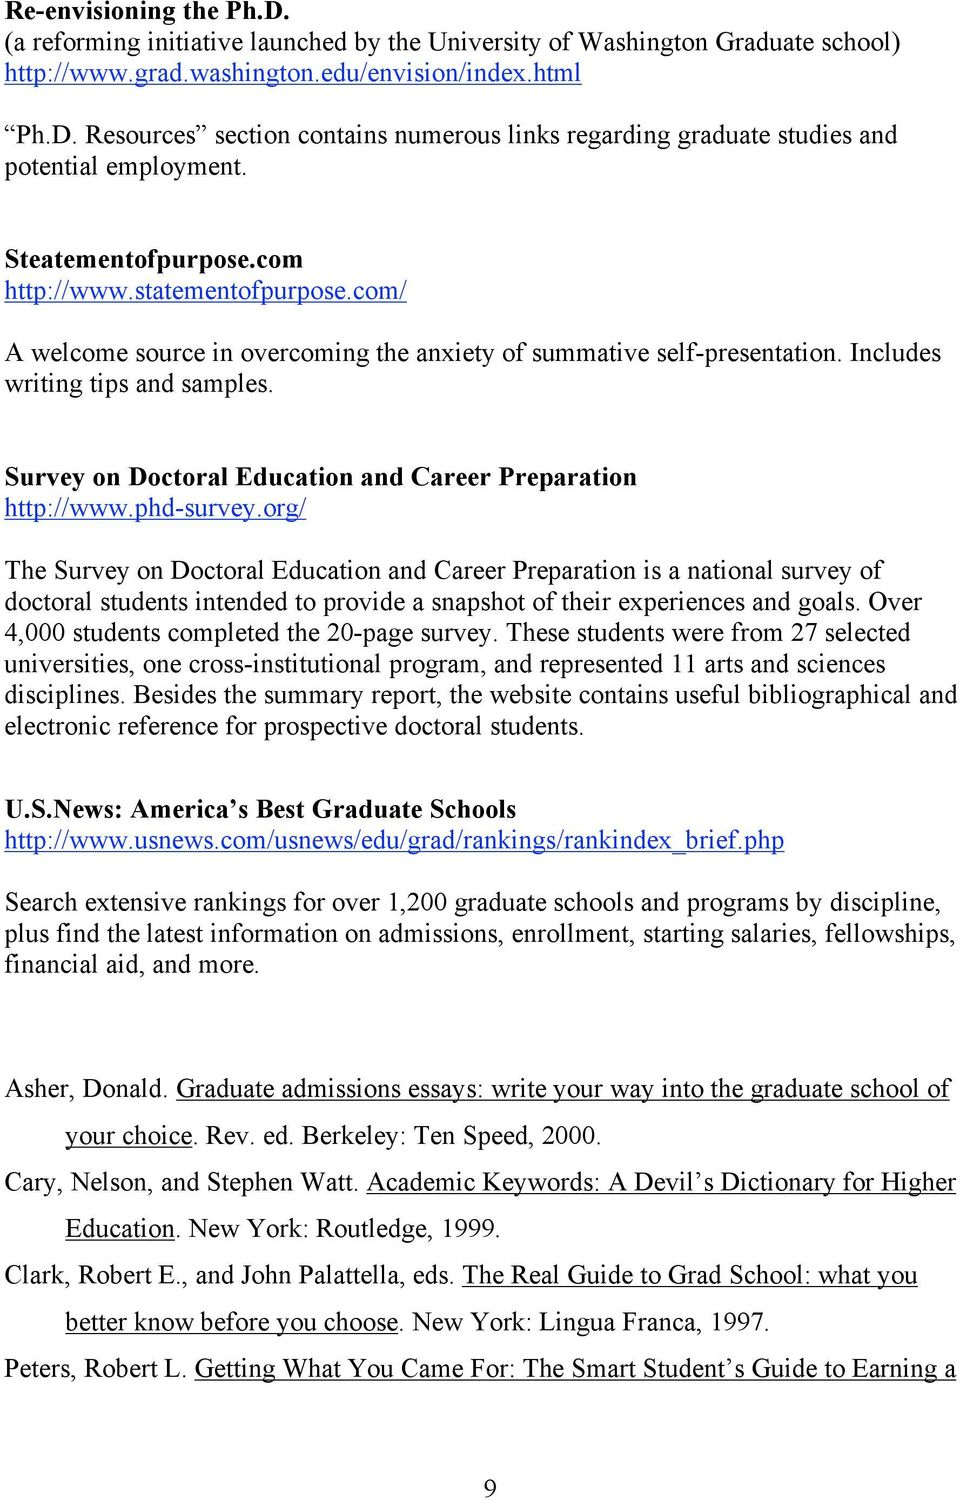 Survey on Doctoral Education and Career Preparation http://www.phd-survey.